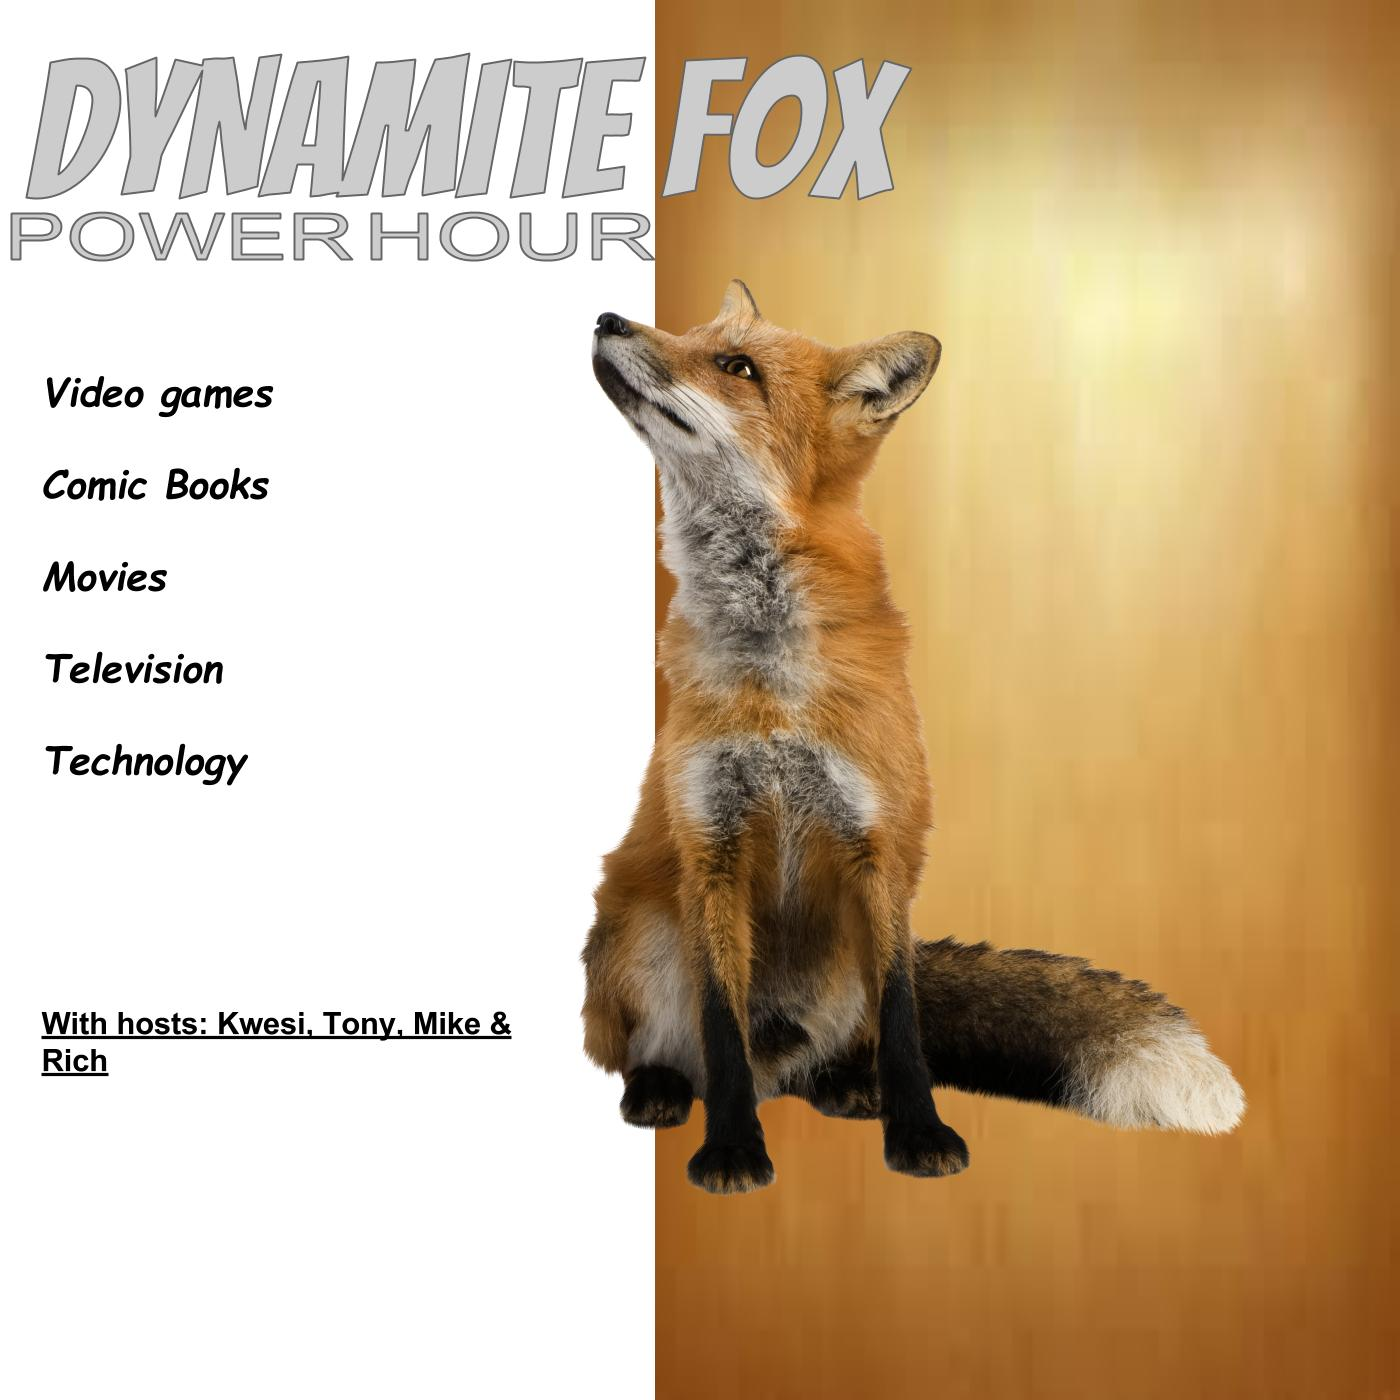 Dynamite Fox Power Hour